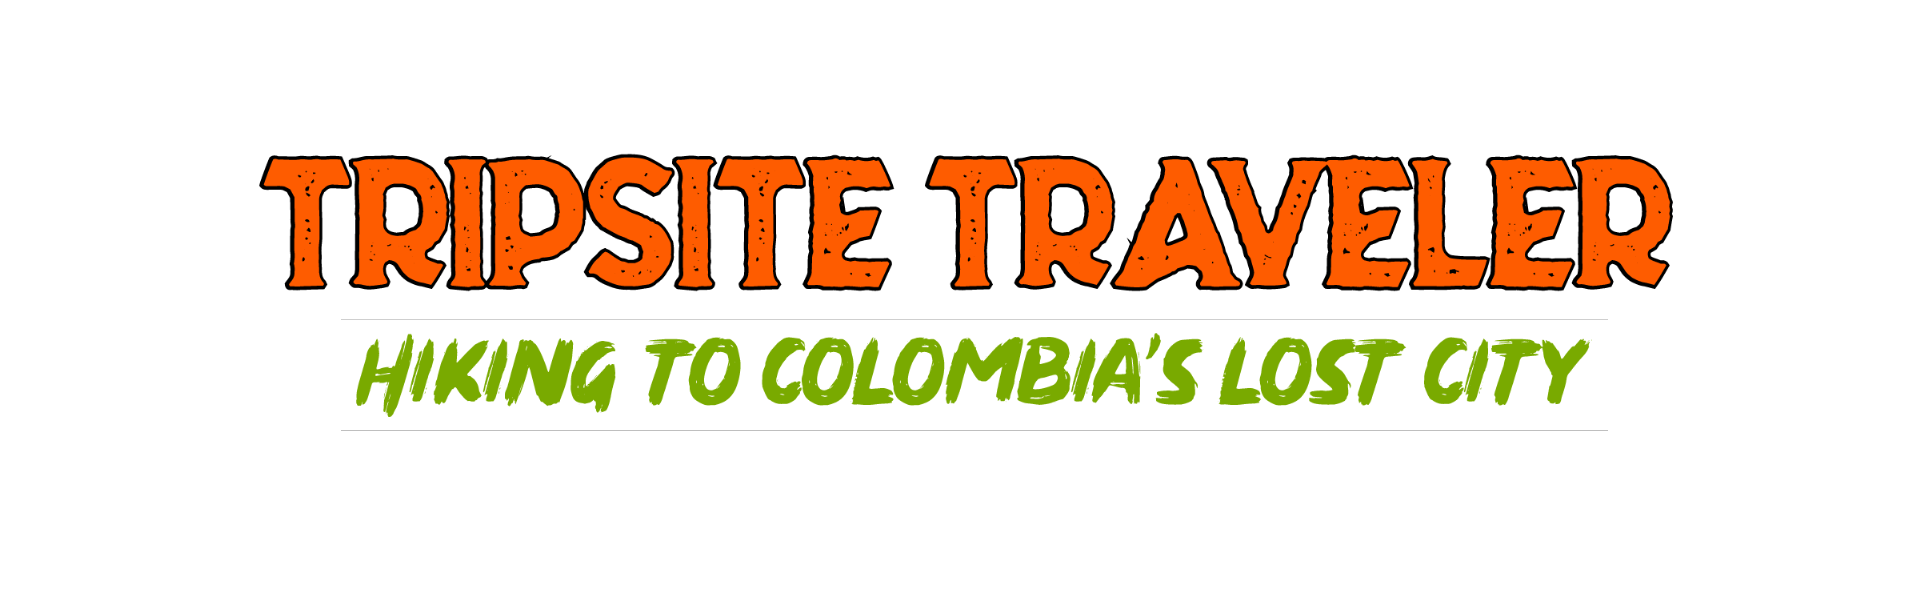 Hiking to Colombia's Lost City